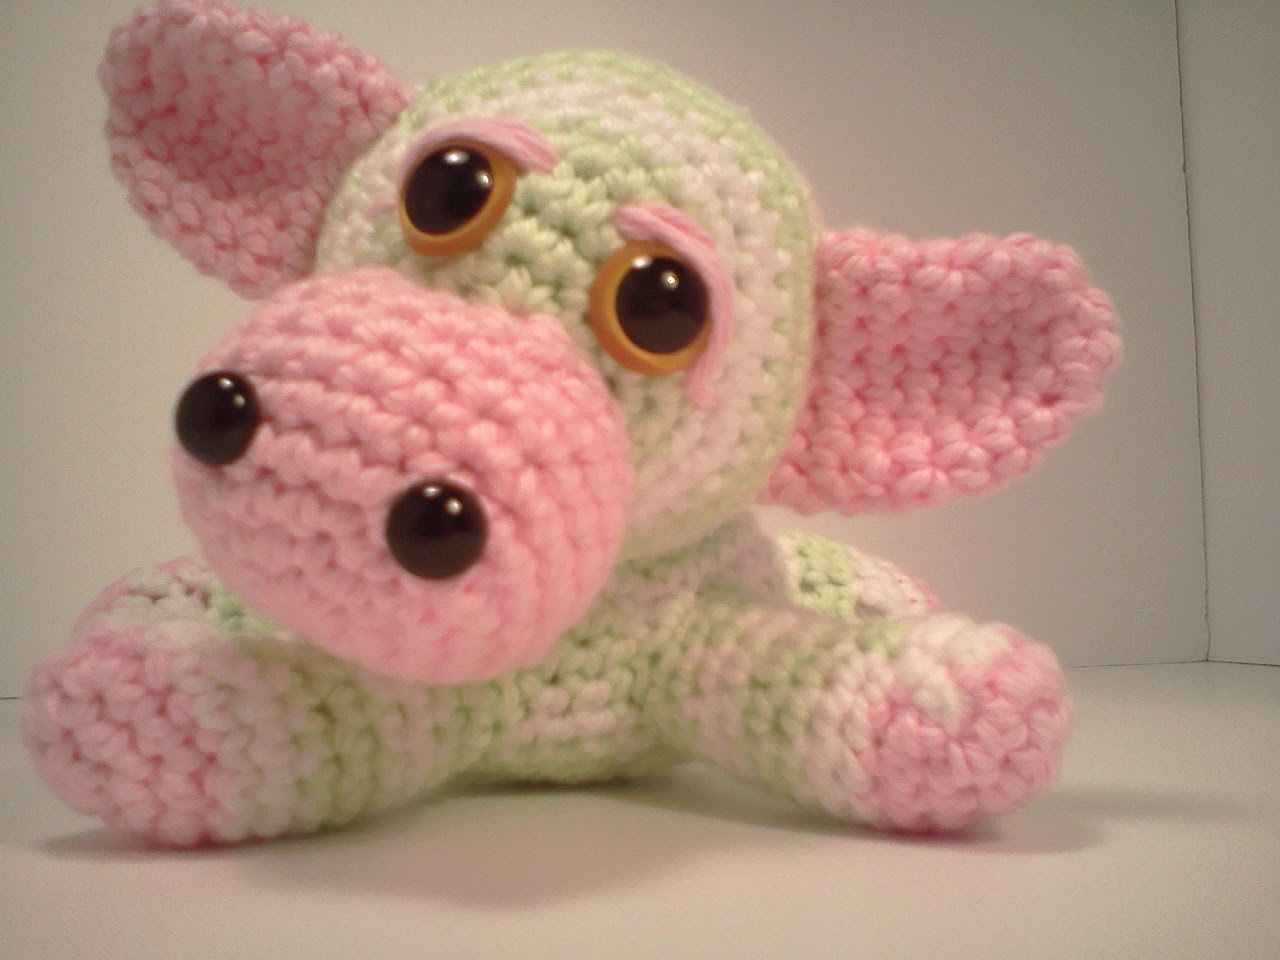 2000 Free Amigurumi Patterns: Emma the Baby Cow